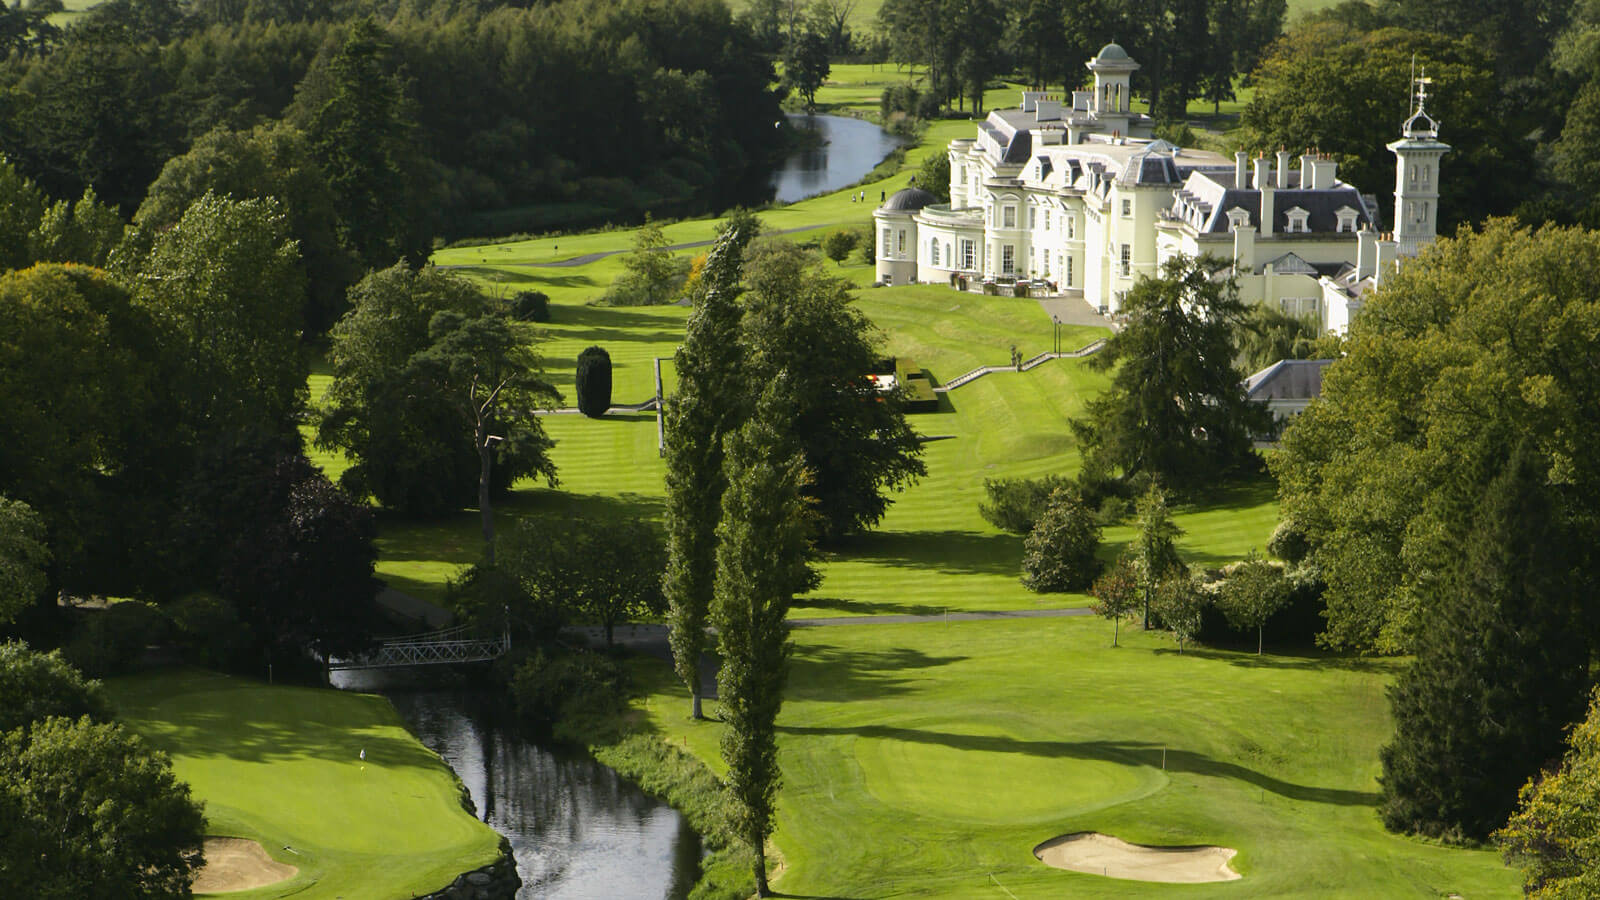 What Links Course In County Kildare Would You Recommend For A Families Weekend Activity